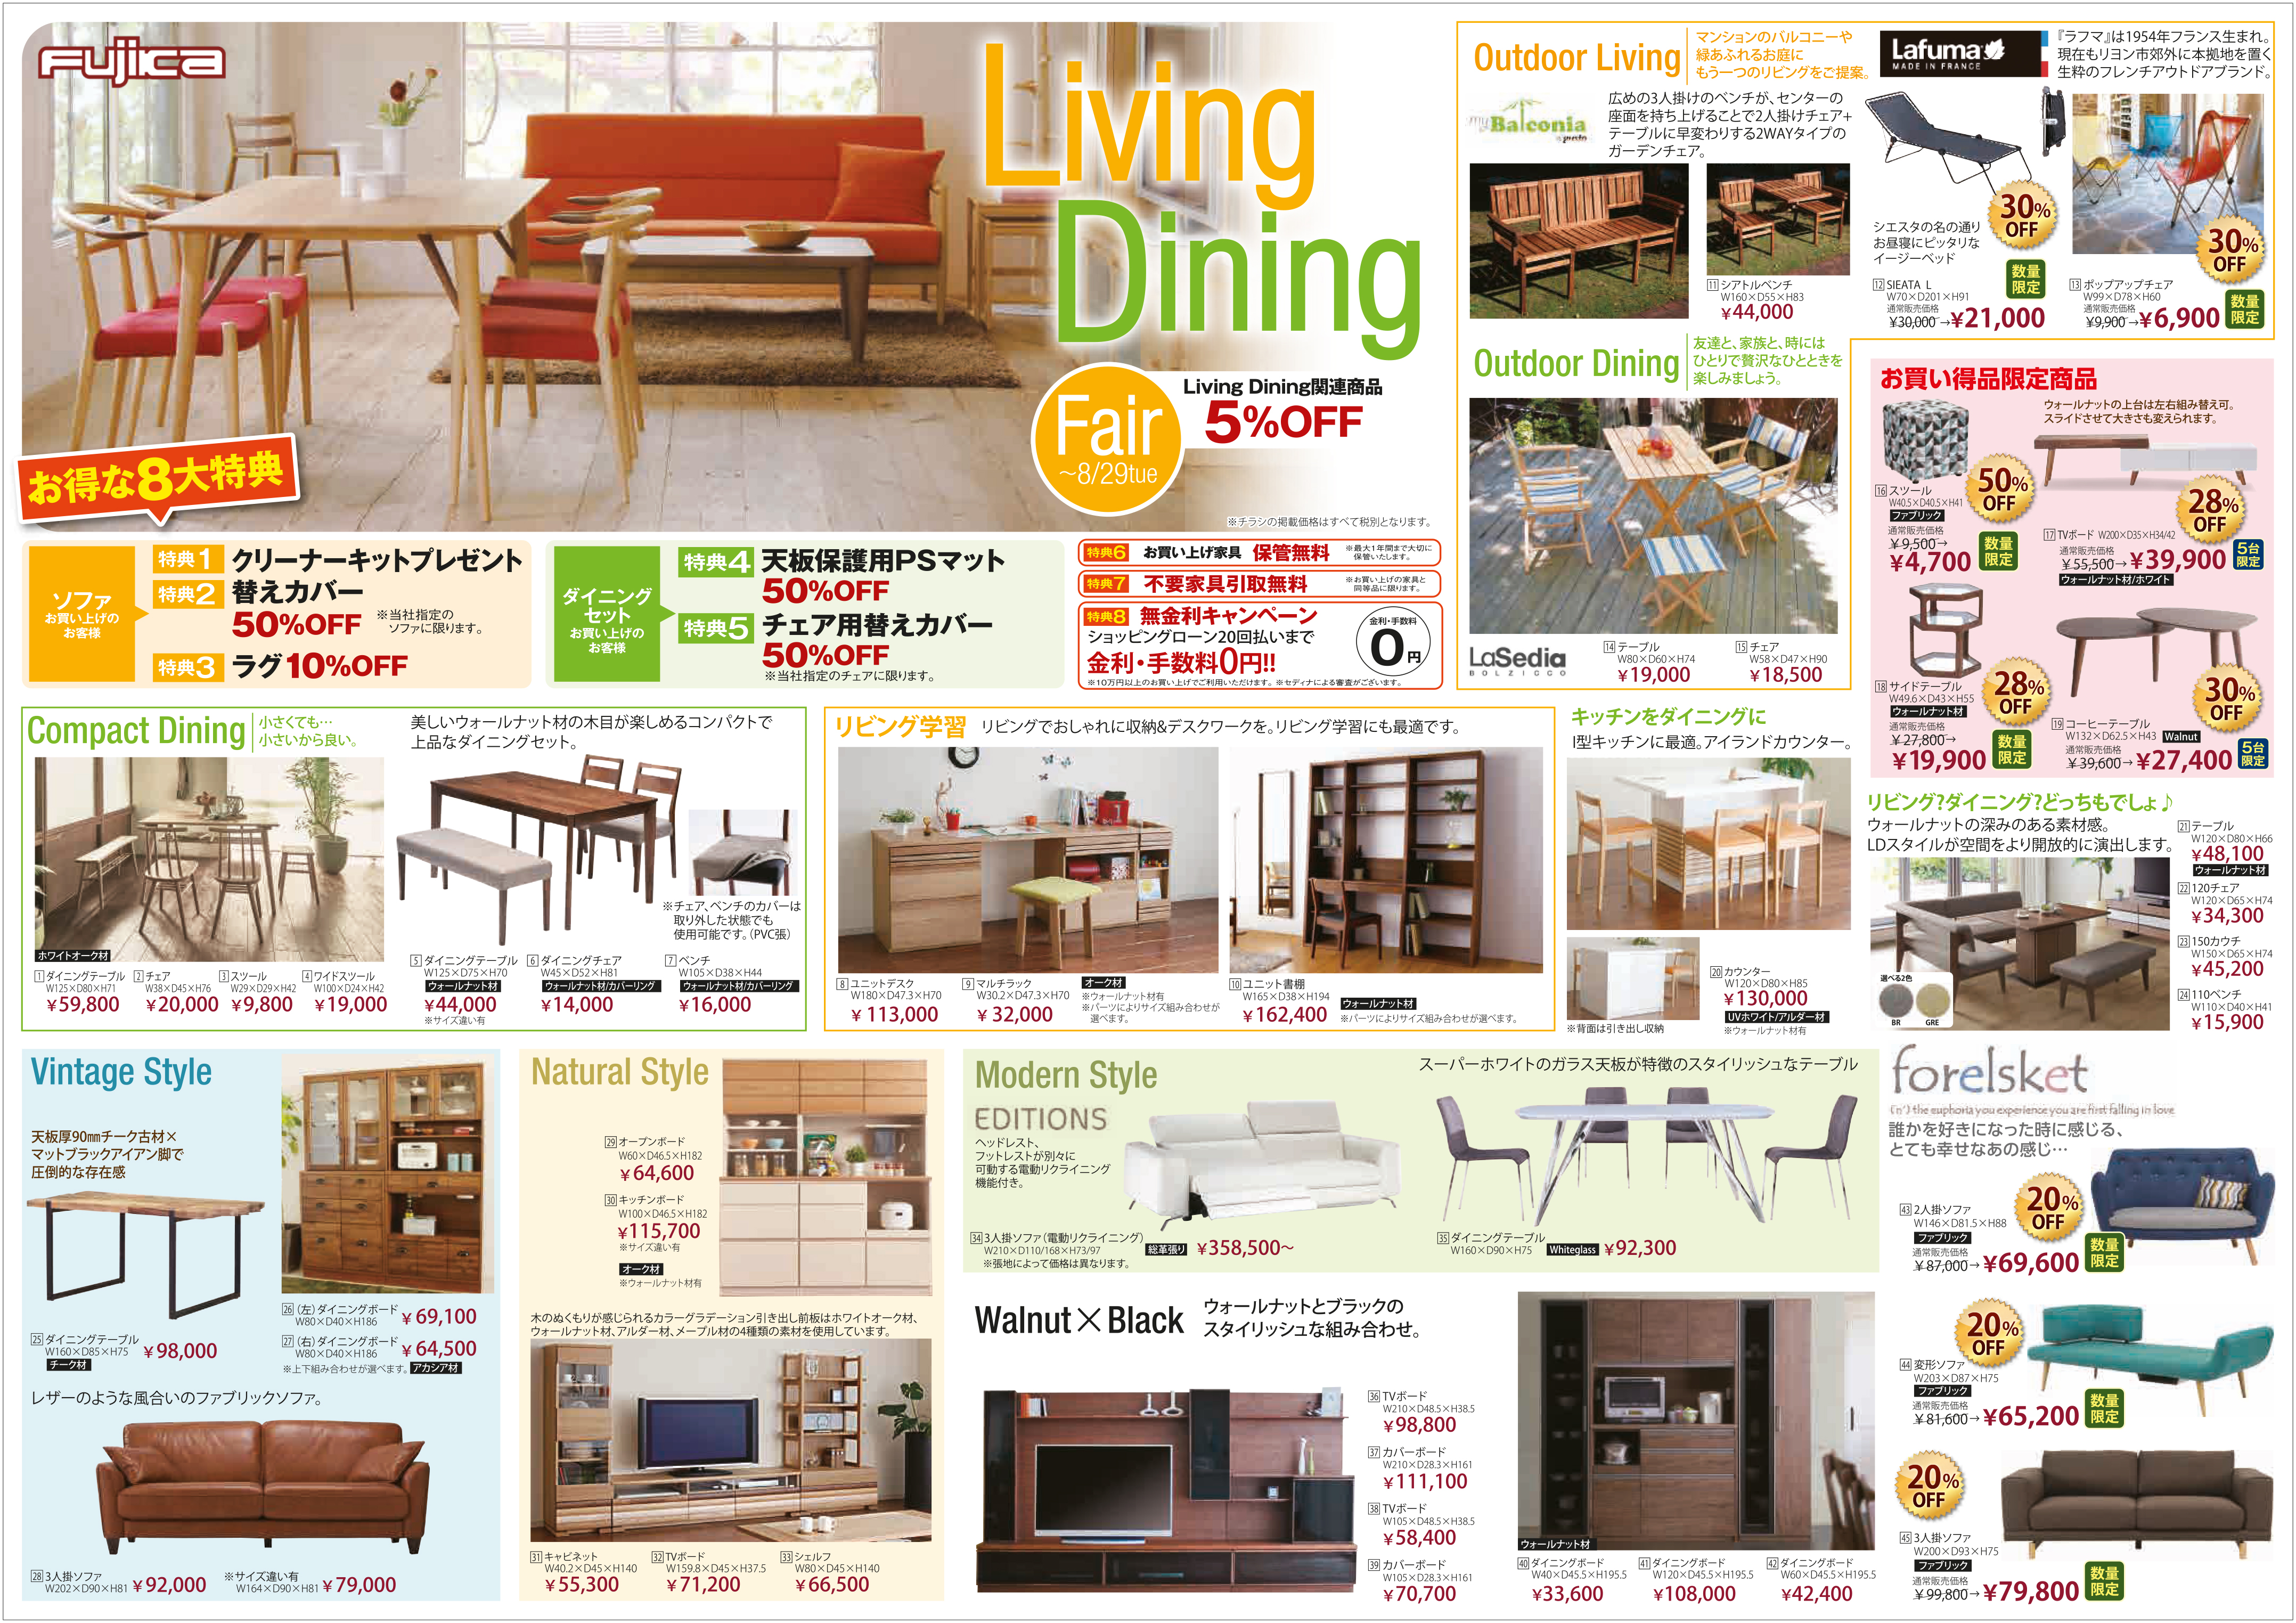 1707_livingdining_omote_0629